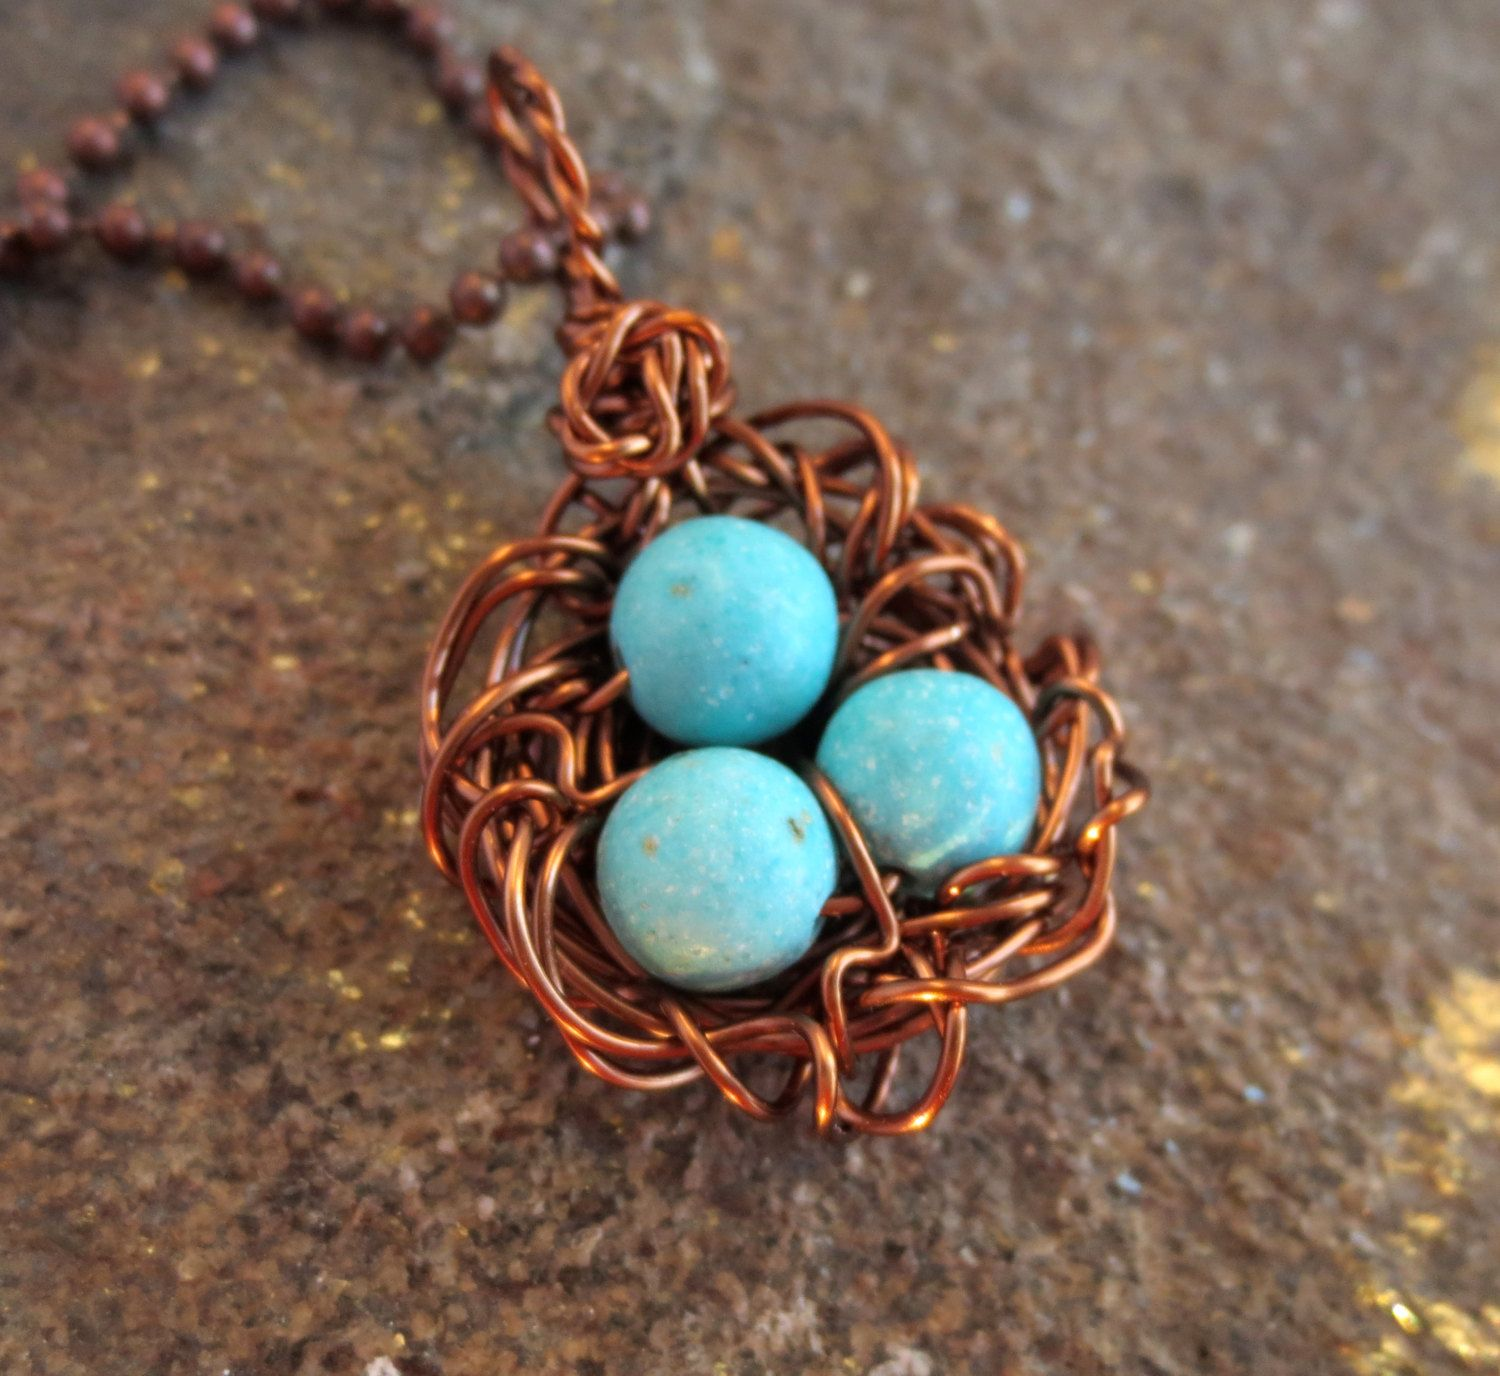 Birds nest pendant wire wrapped antique copper robins egg green blue birds nest pendant wire wrapped antique copper robins egg green blue turquoise bead by lttleevrydycreations on aloadofball Choice Image